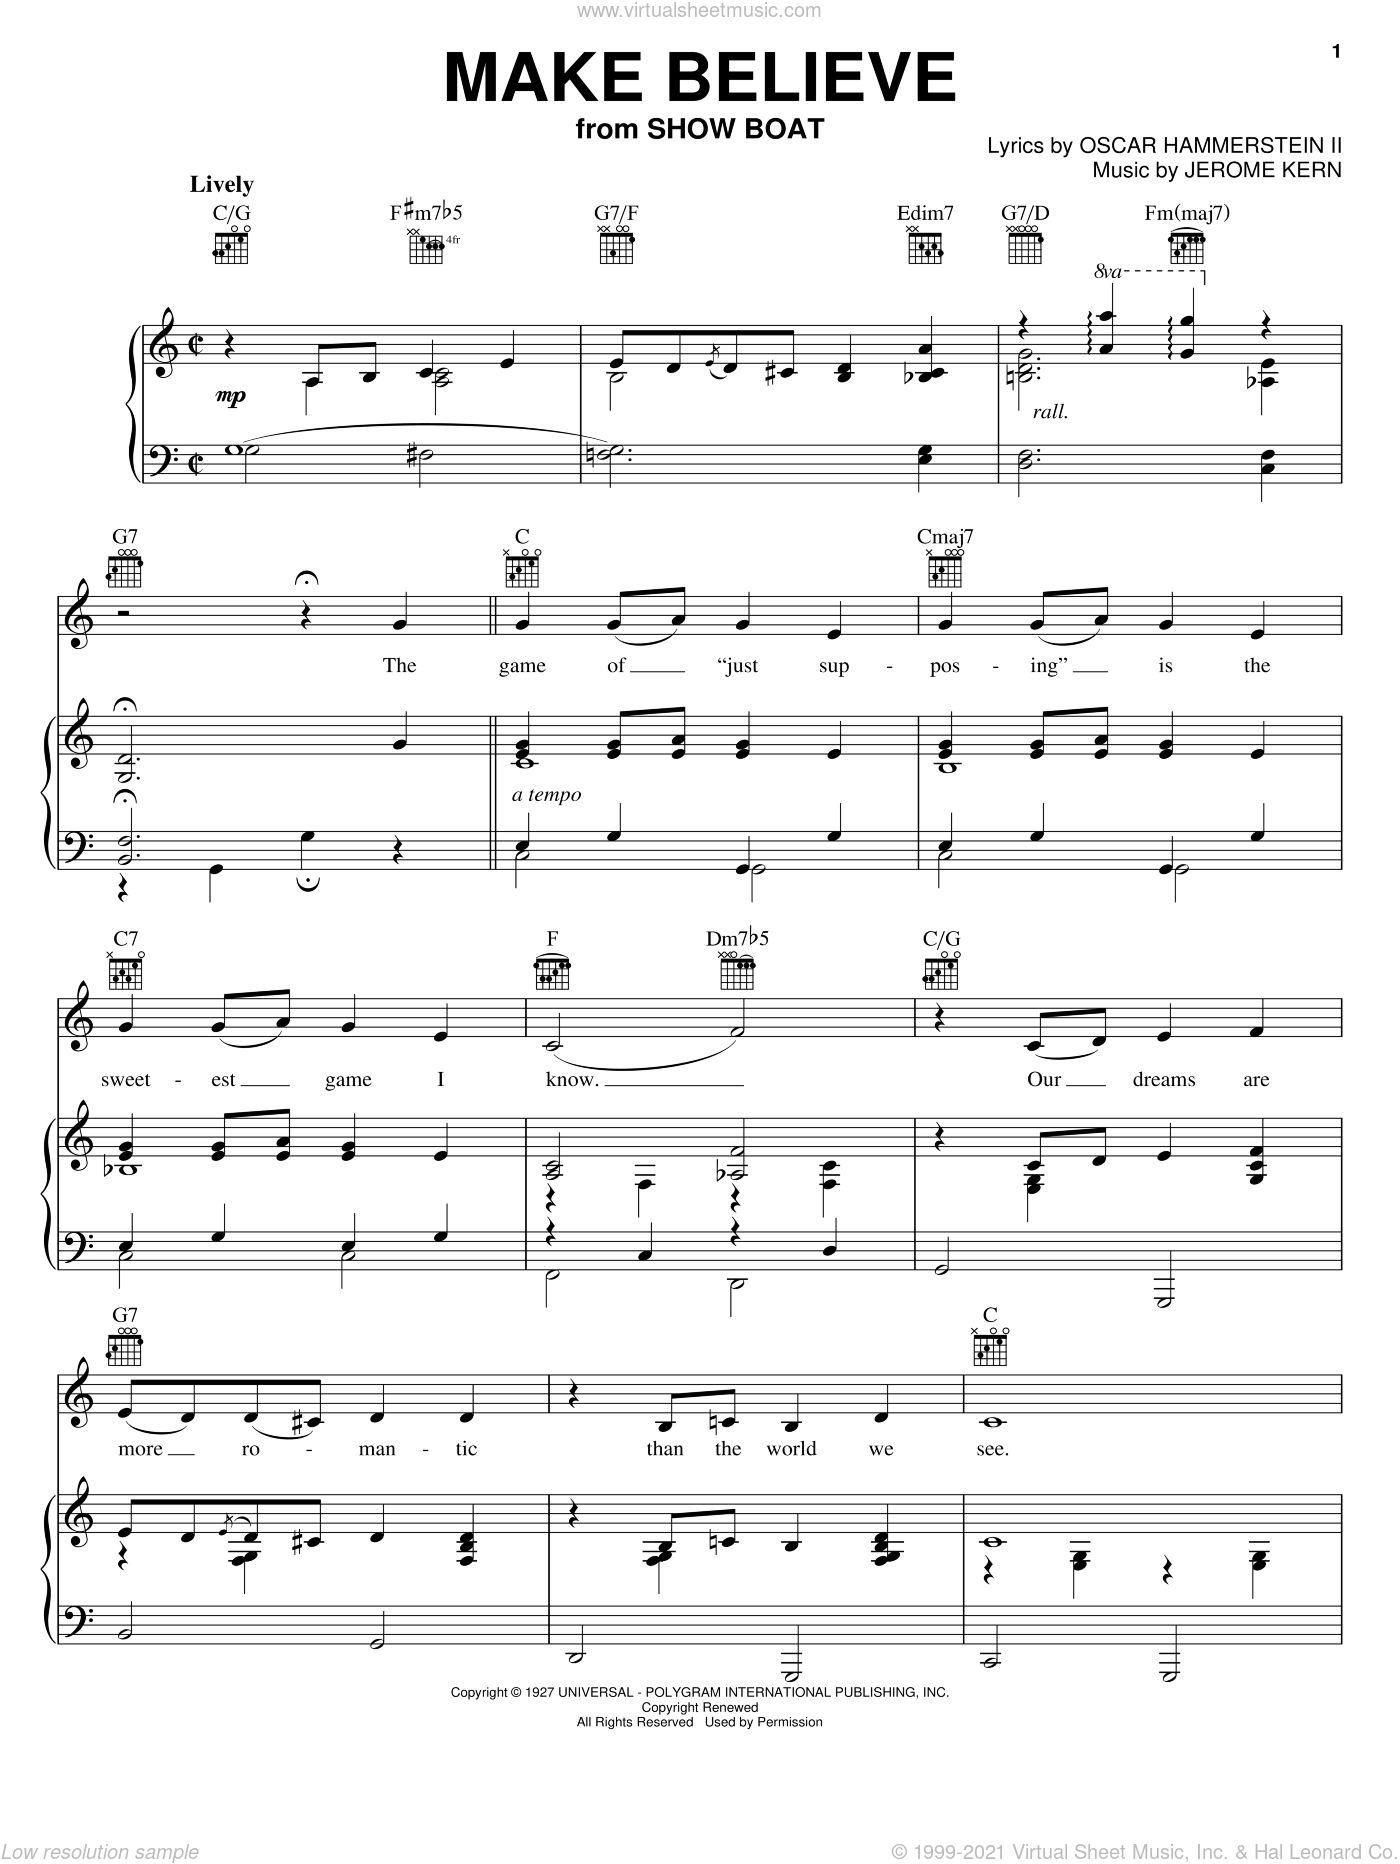 Make Believe sheet music for voice, piano or guitar by Jerome Kern, Benny Goodman, Bing Crosby, Peggy Lee, Show Boat (Musical) and Oscar II Hammerstein, intermediate